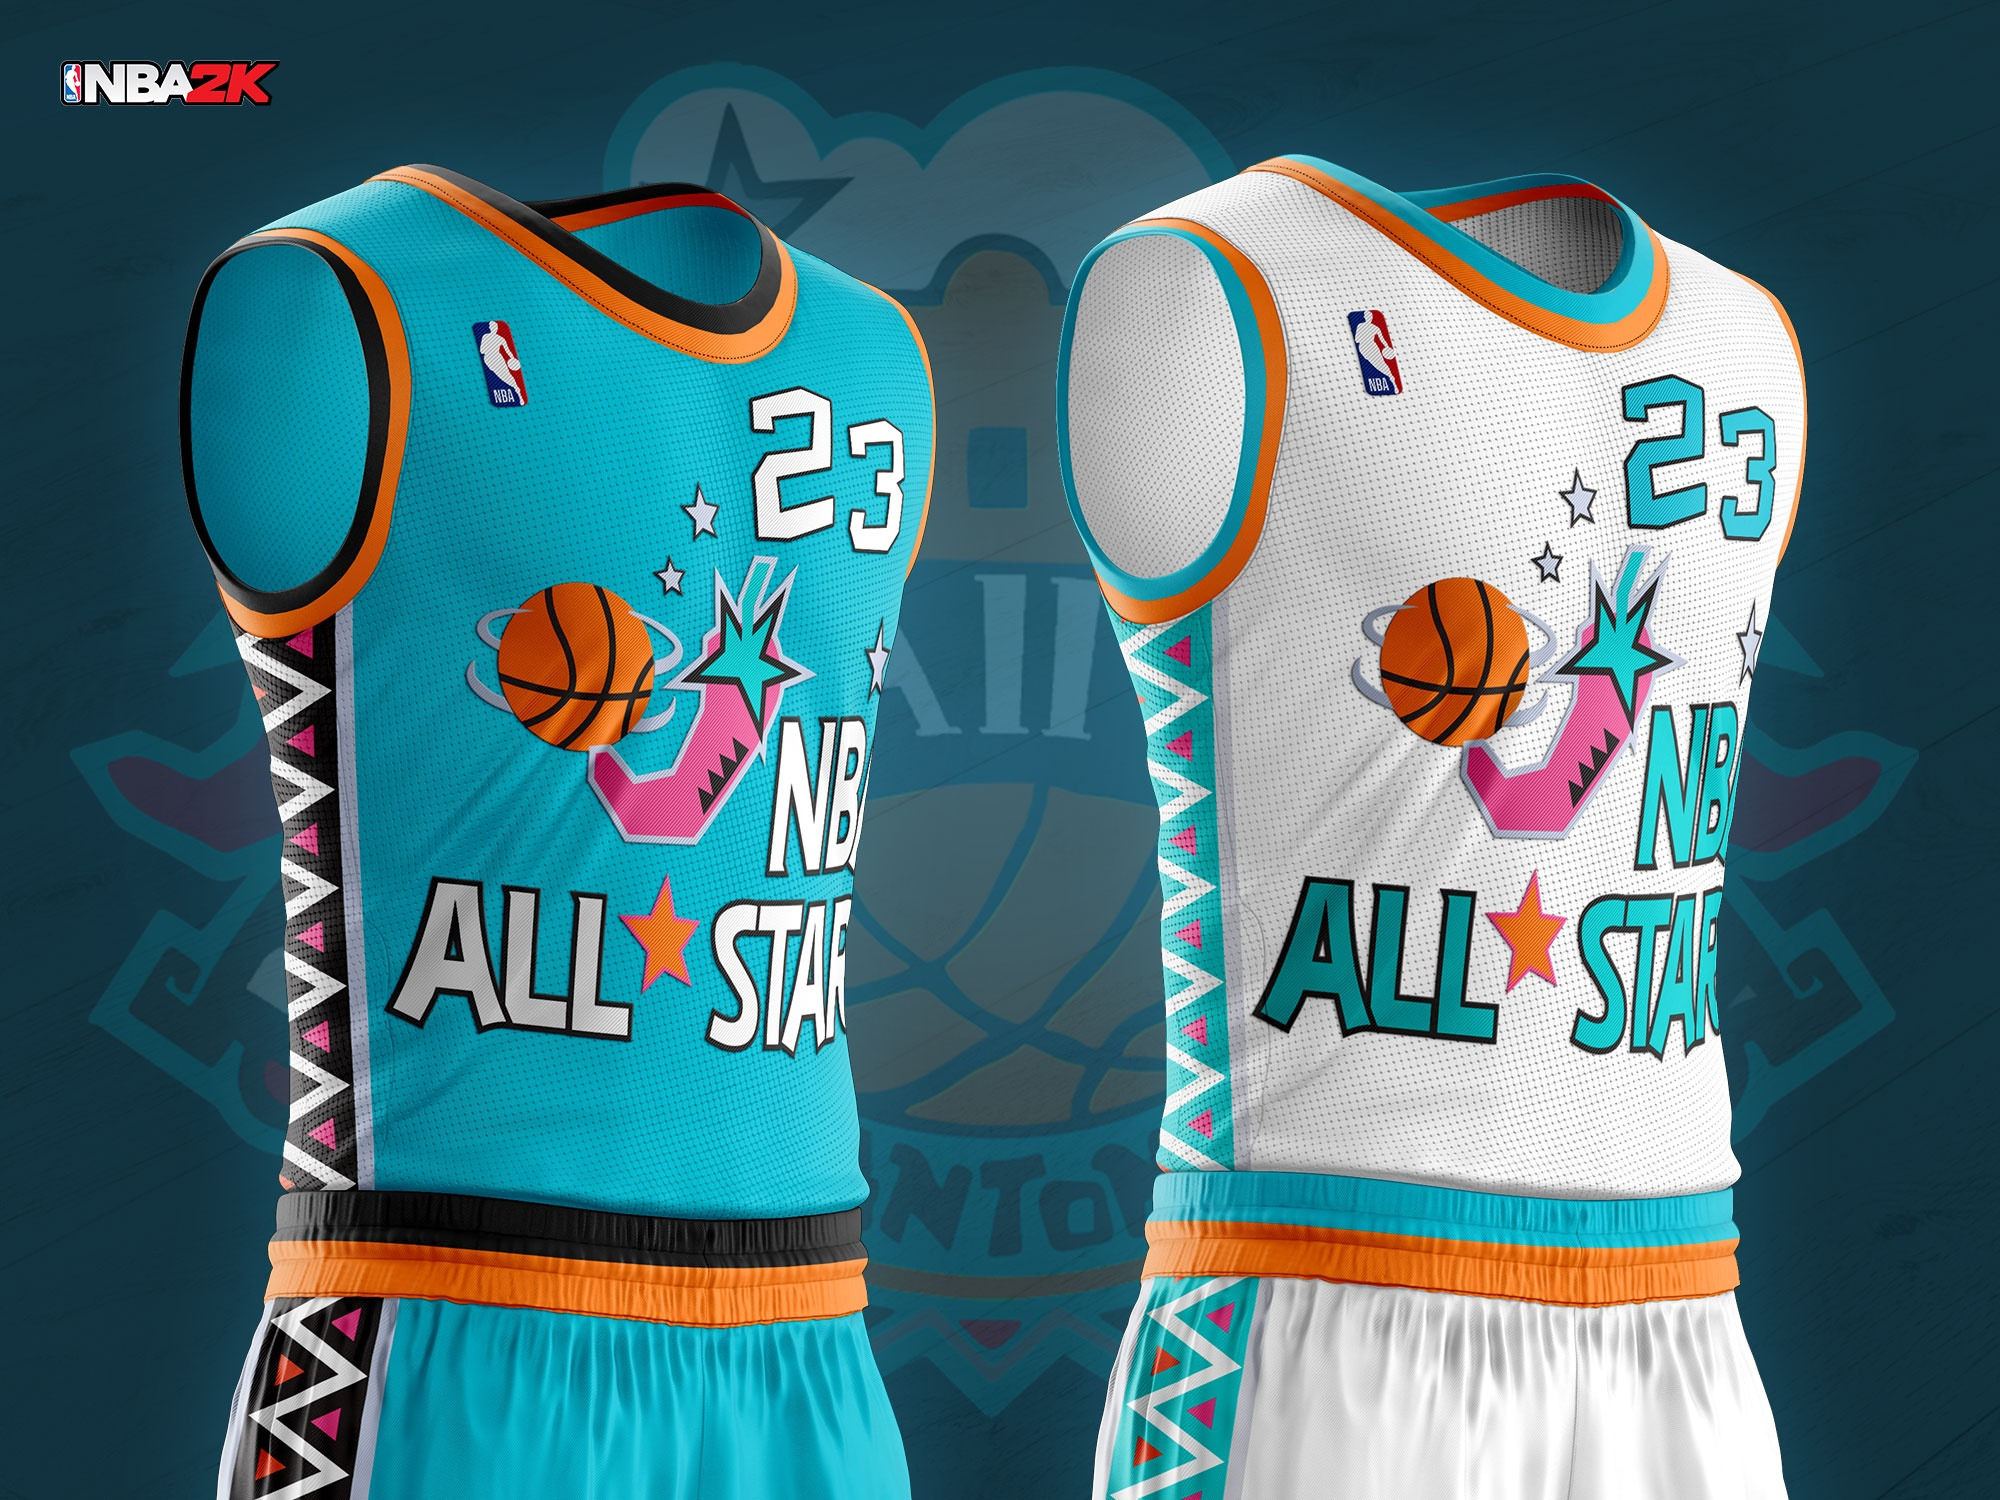 1996 NBA All Star Jersey \u0026 Arena